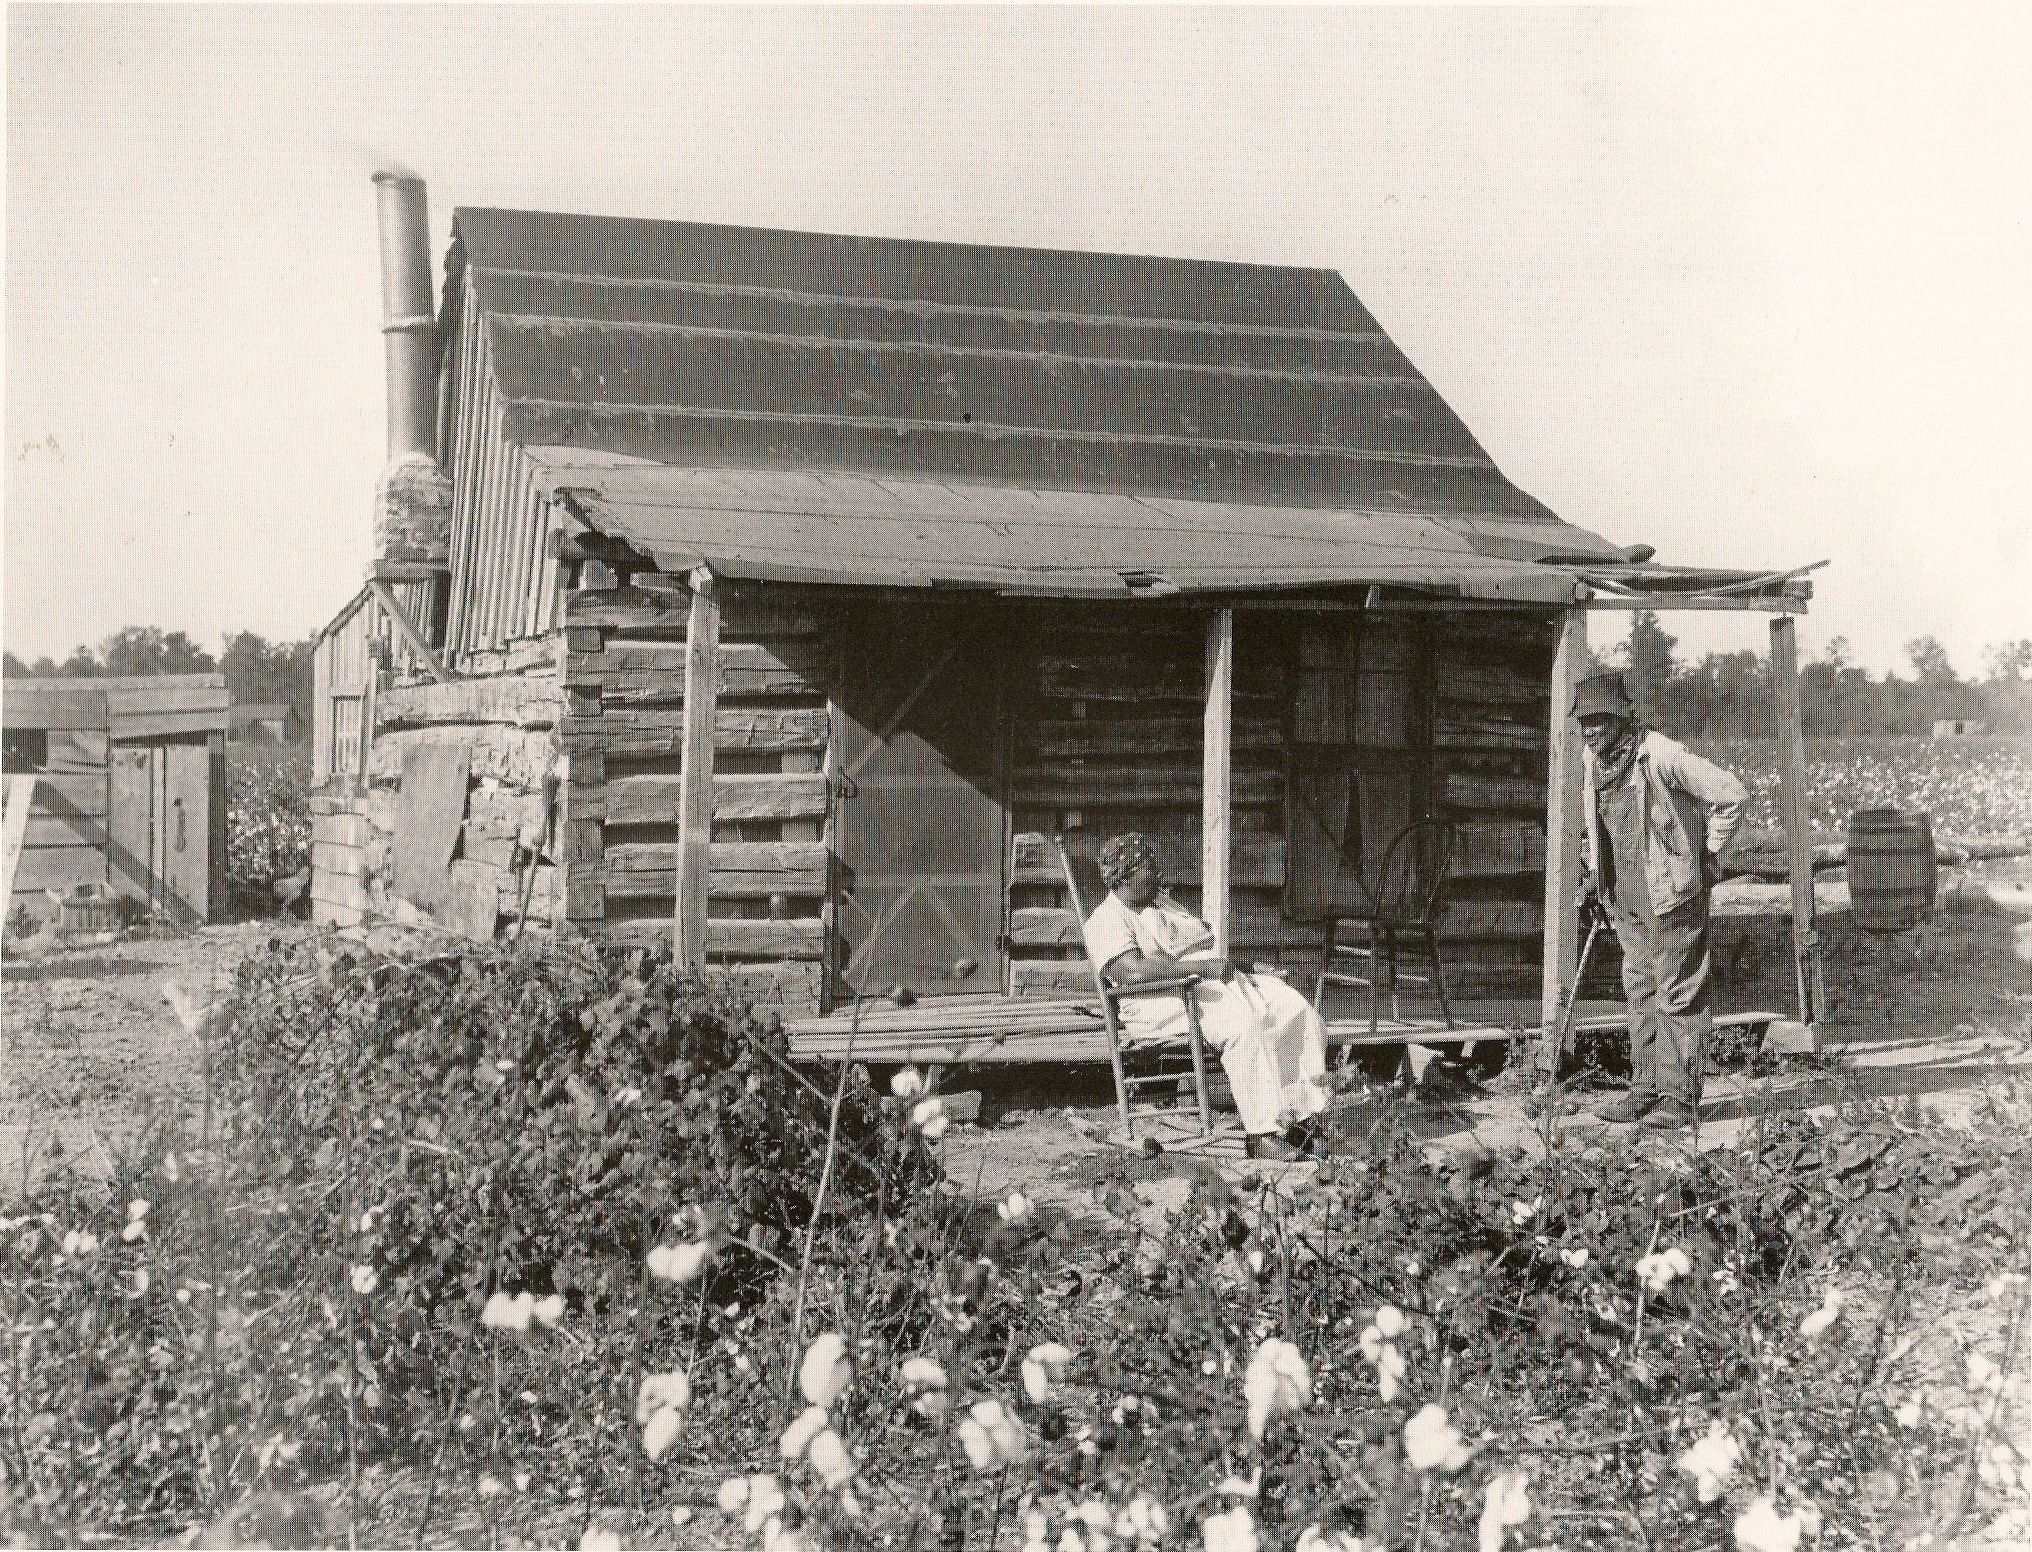 American Pickers Pikeville Nc kentucky sharecroppers | my old kentucky home, old pictures